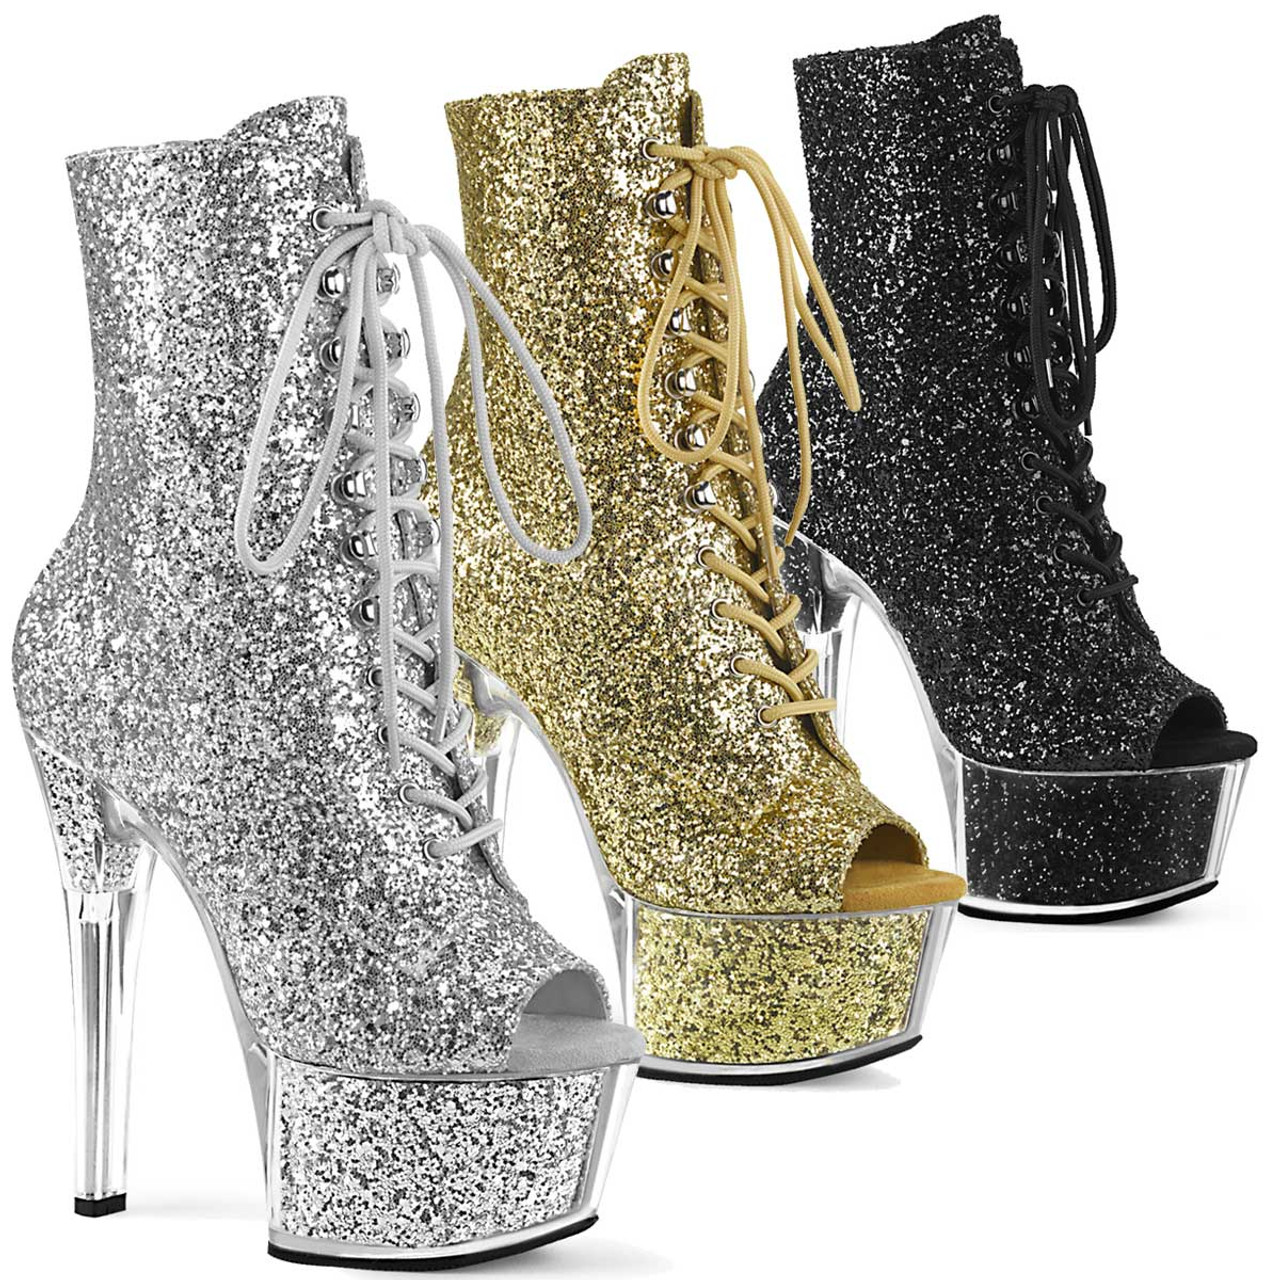 6 Inch Glitter Open Toe Ankle Boots